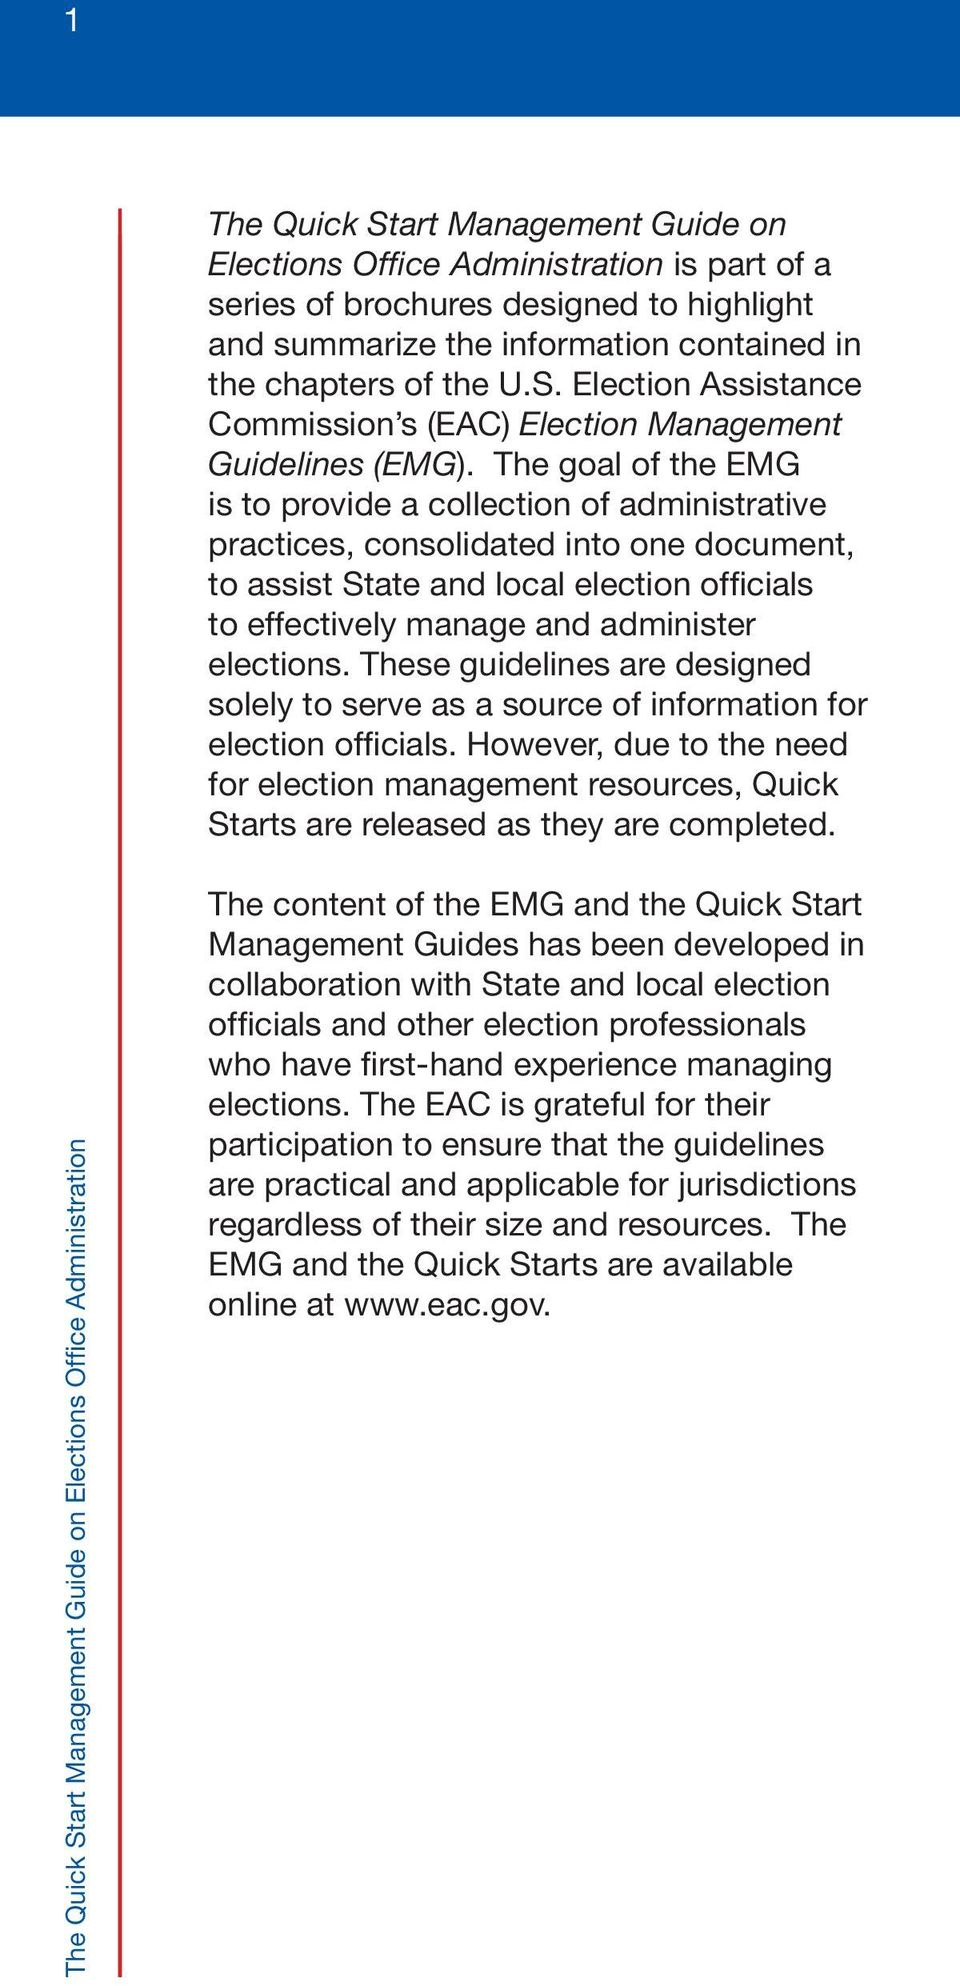 These guidelines are designed solely to serve as a source of information for election officials.